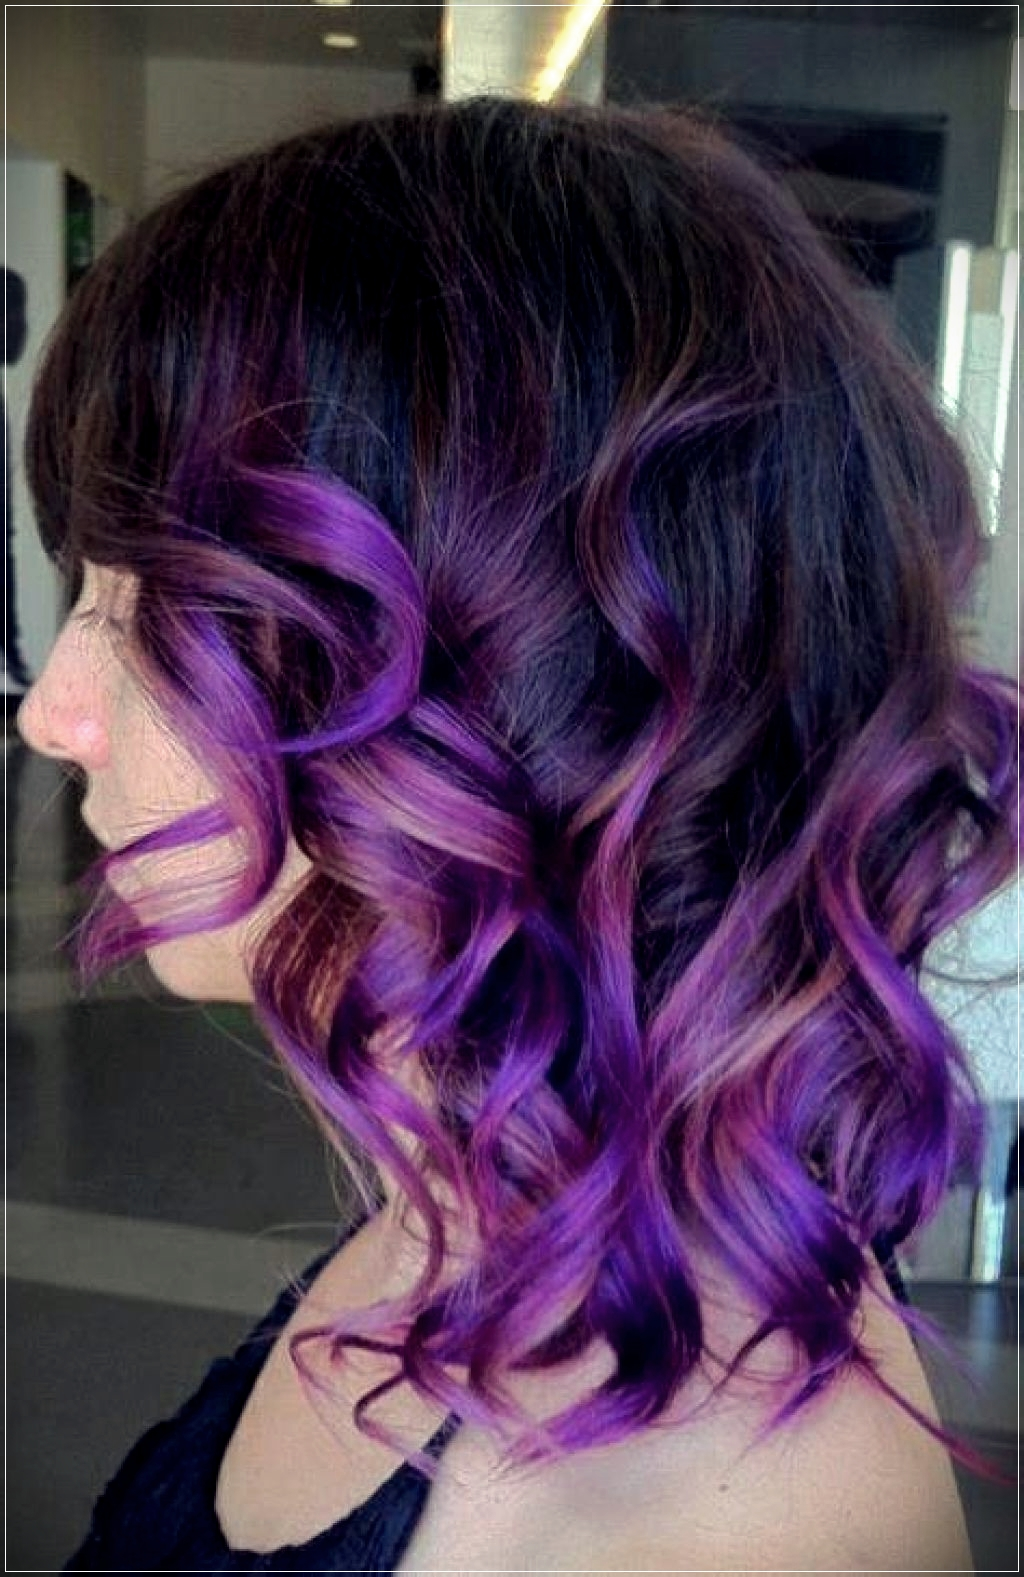 Some useful ombre hair ideas for short hair - ombre hair ideas for short hair 10